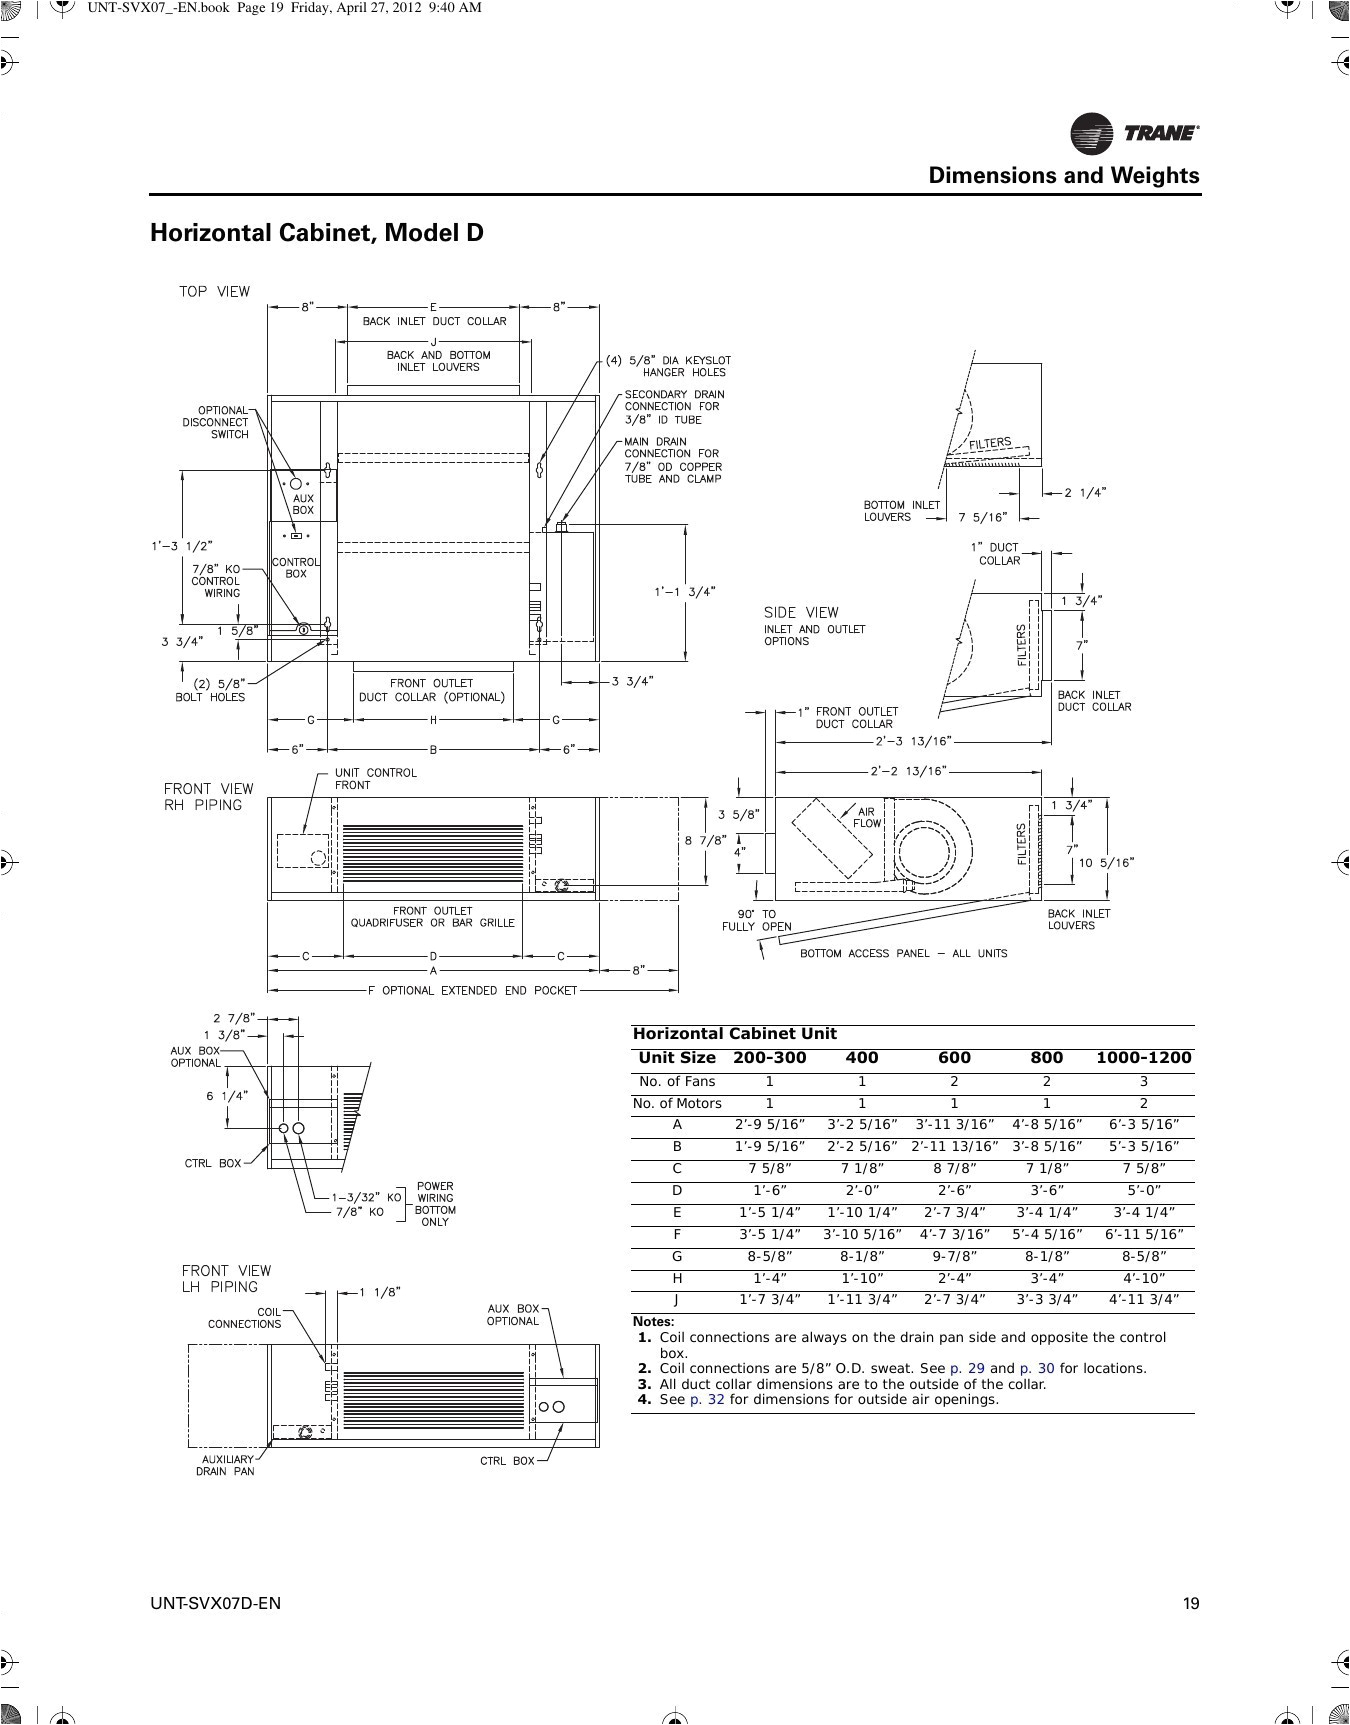 wiring diagram for thermostat unique honeywell thermostat heating lyth5110d1006 wire diagram 21